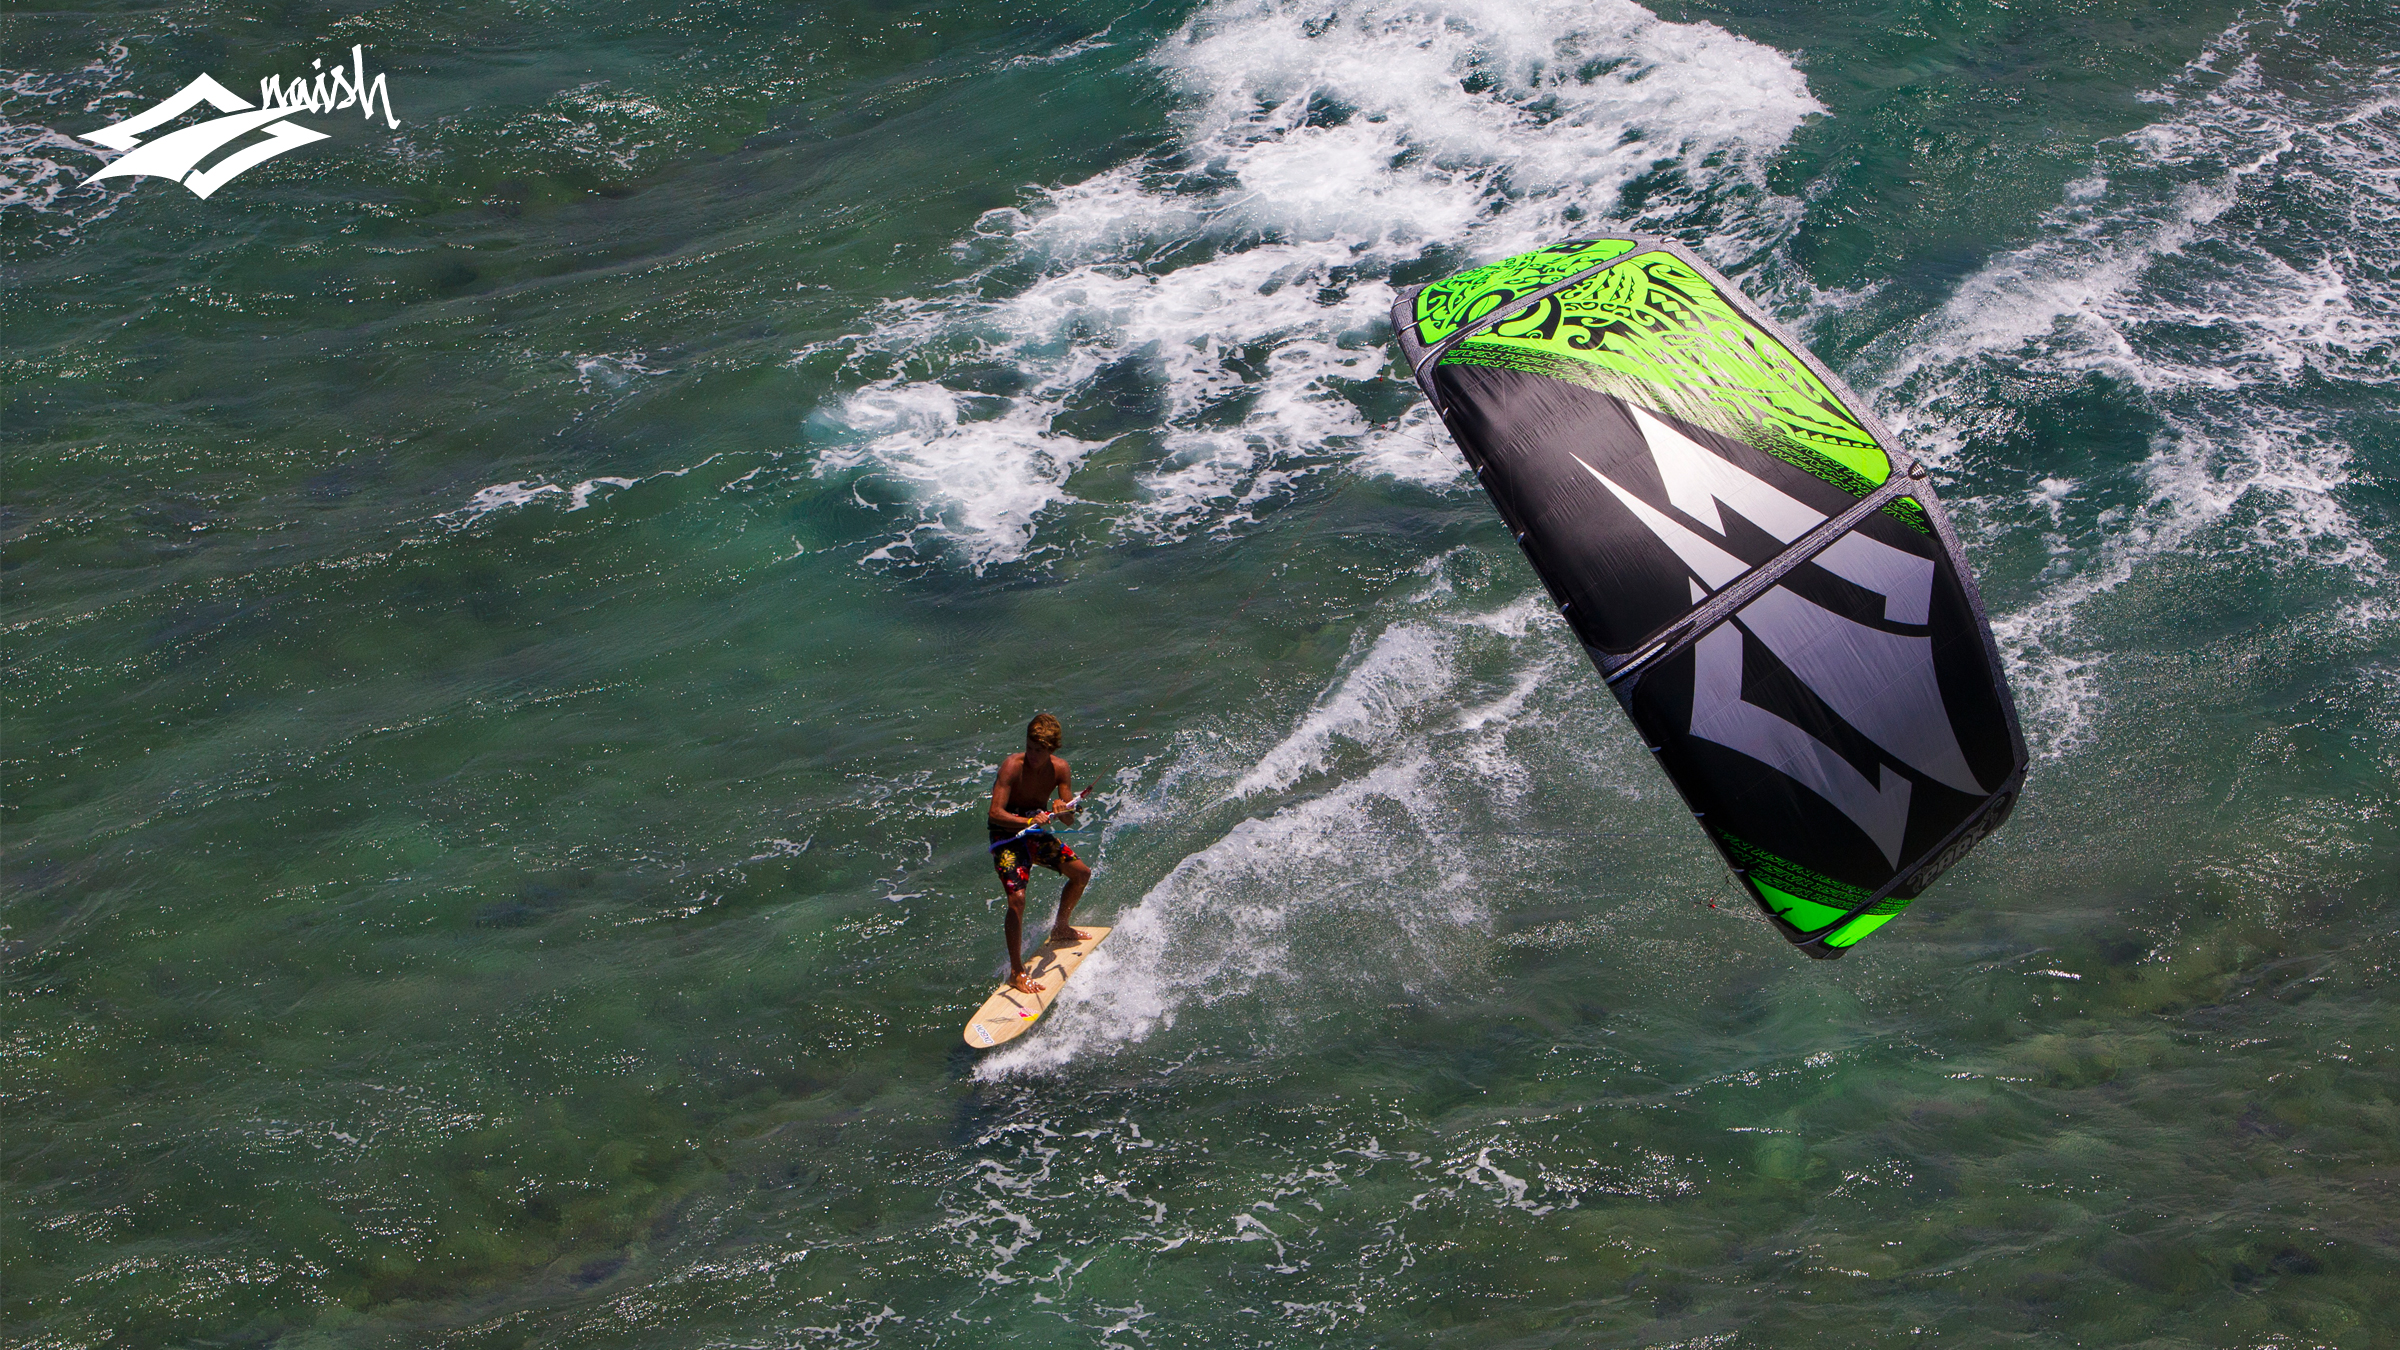 kitesurf wallpaper image - Kai Lenny cruising with the Naish Park kite and Alaia kiteboard off Hawaii - in resolution: High Definition - HD 16:9 2400 X 1350